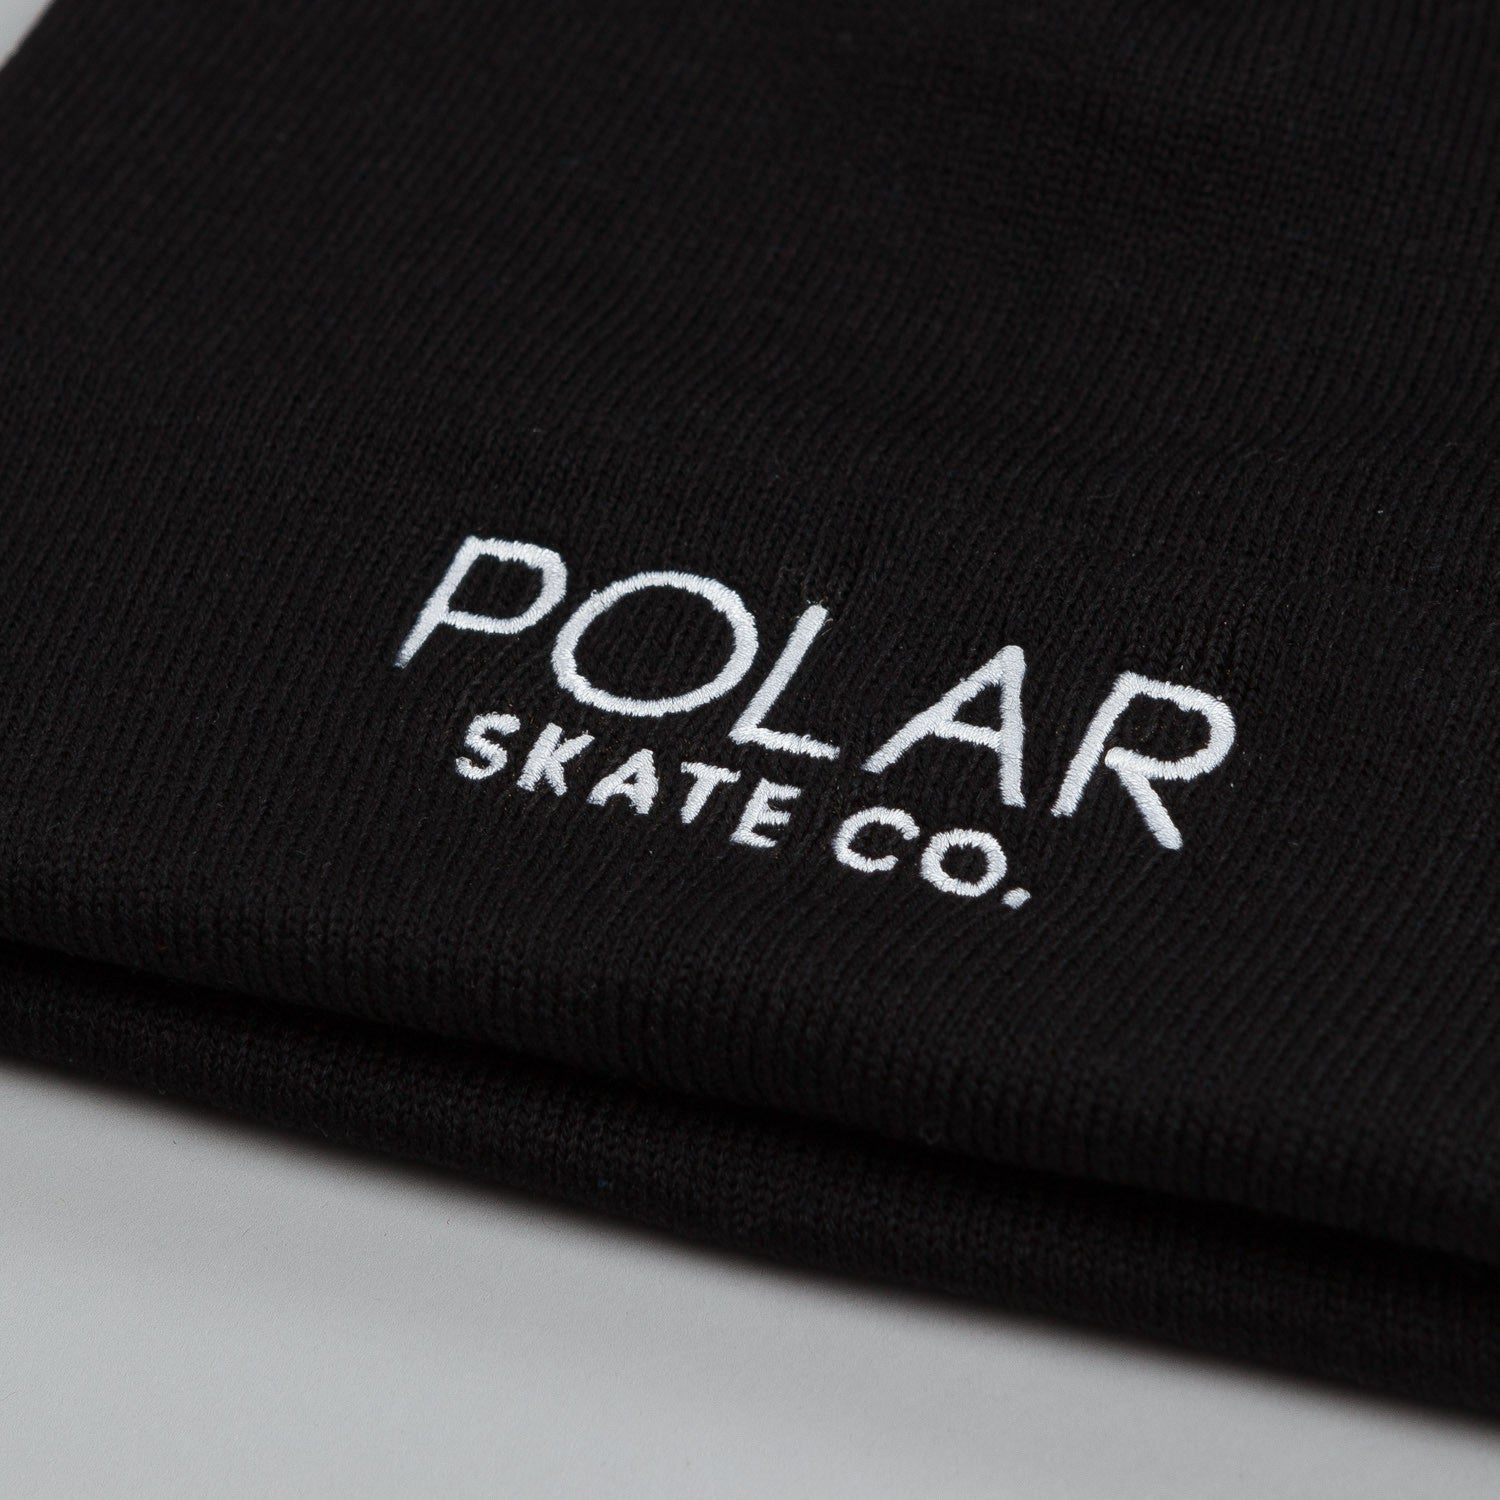 Polar Default Beanie Black / White Embroidery